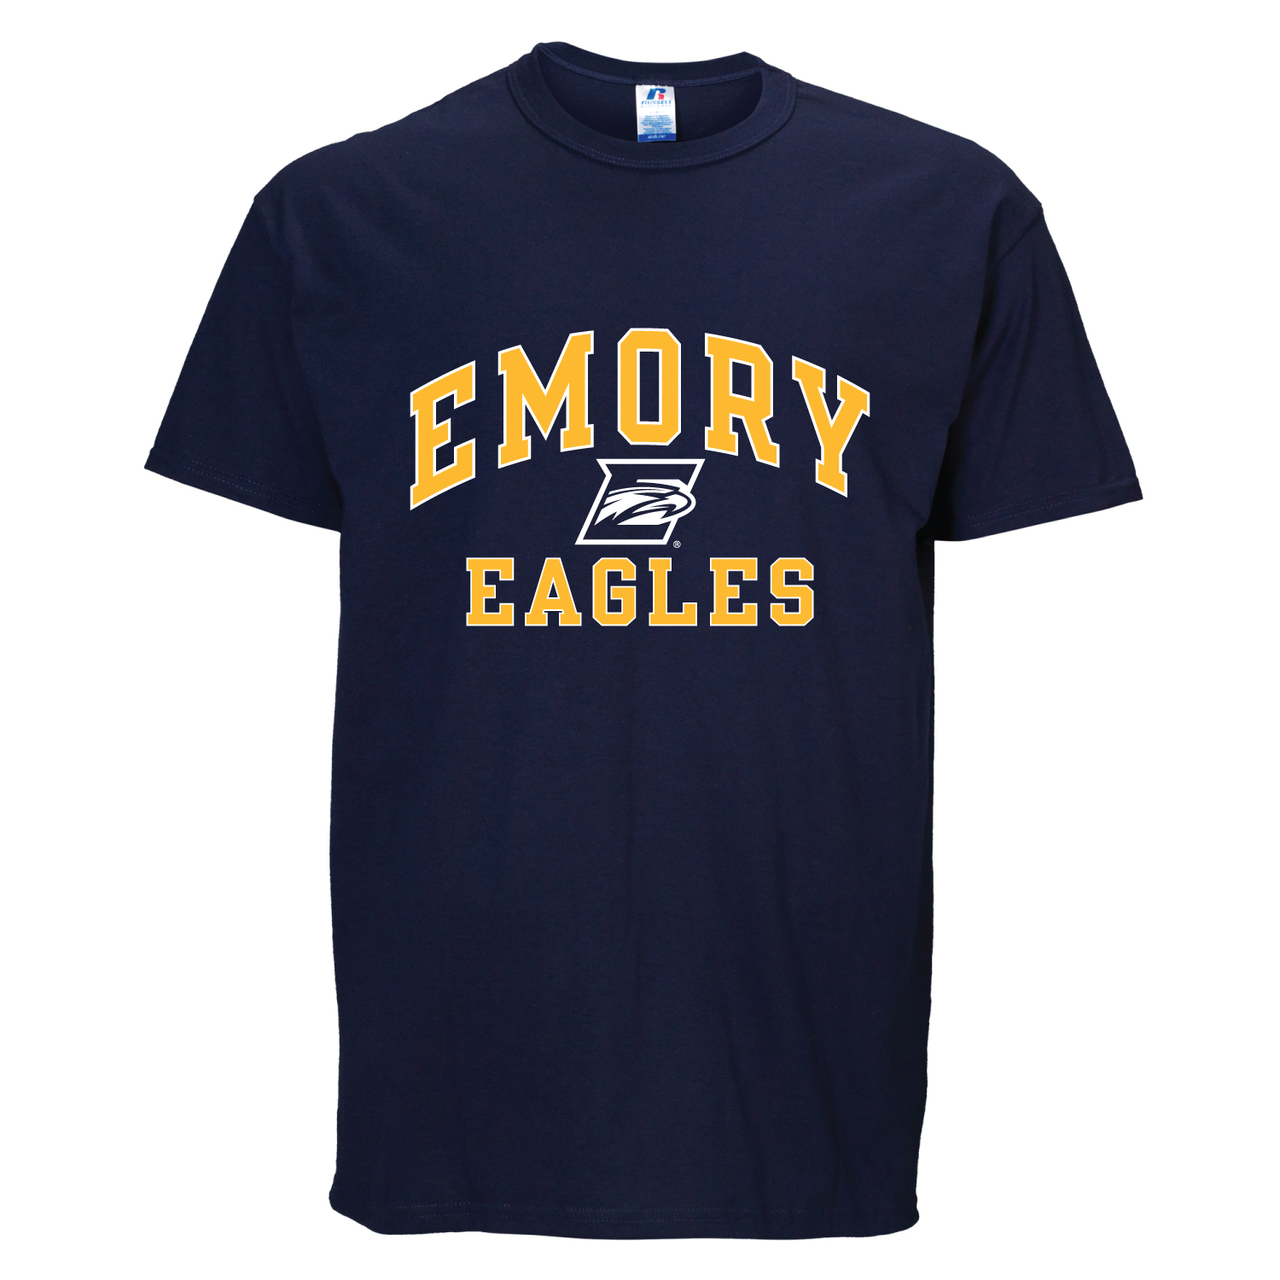 Emory Eagles Adult Arch N' Logo T-Shirt - Navy